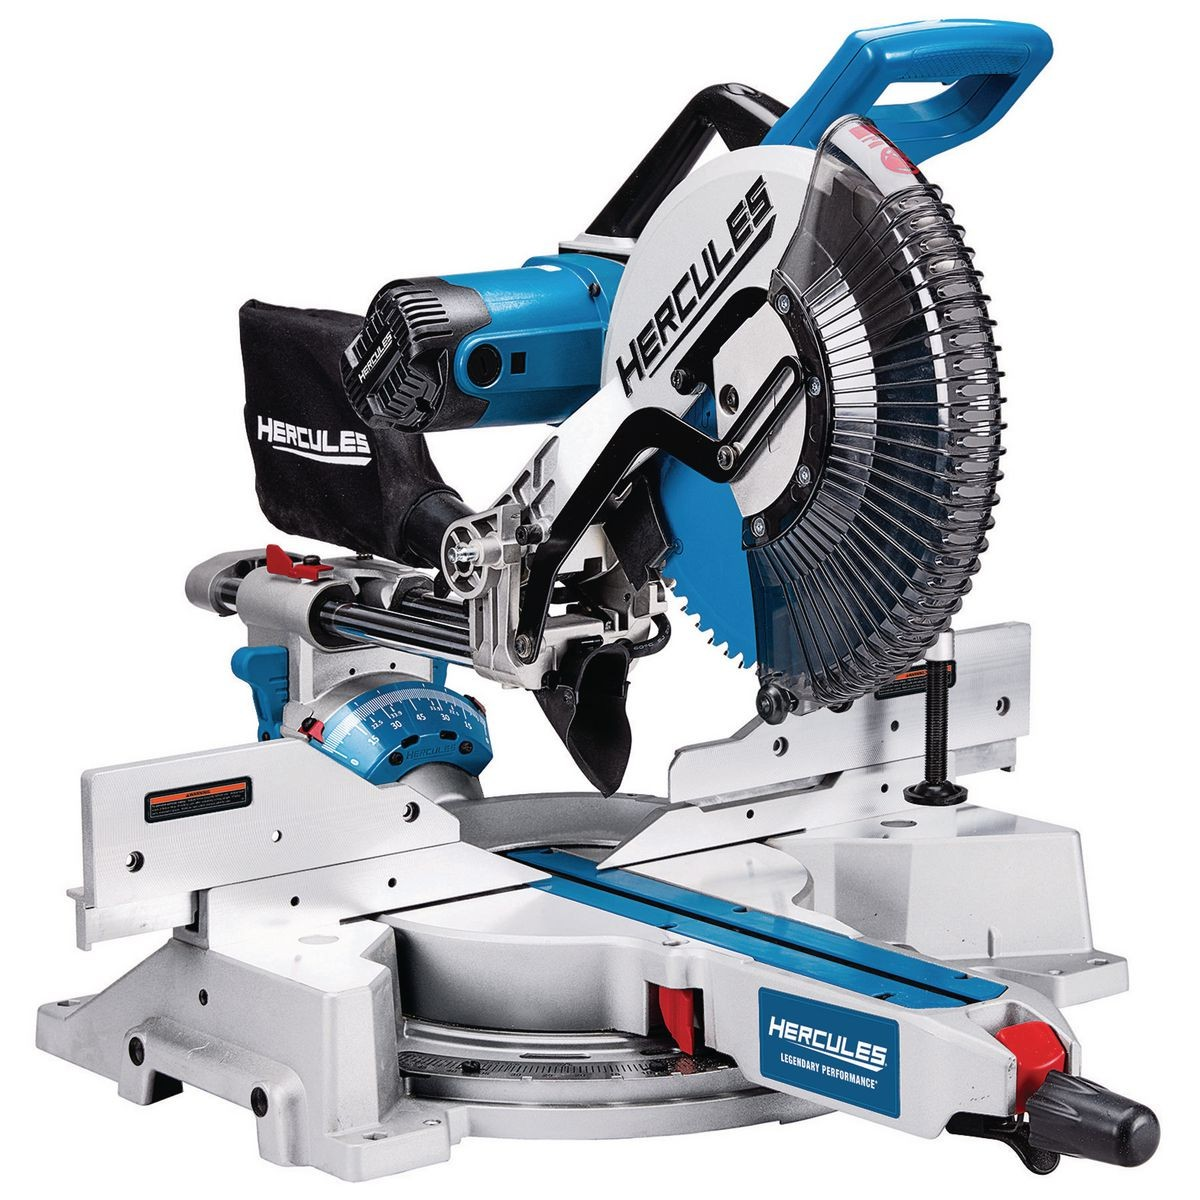 What is a compound miter saw